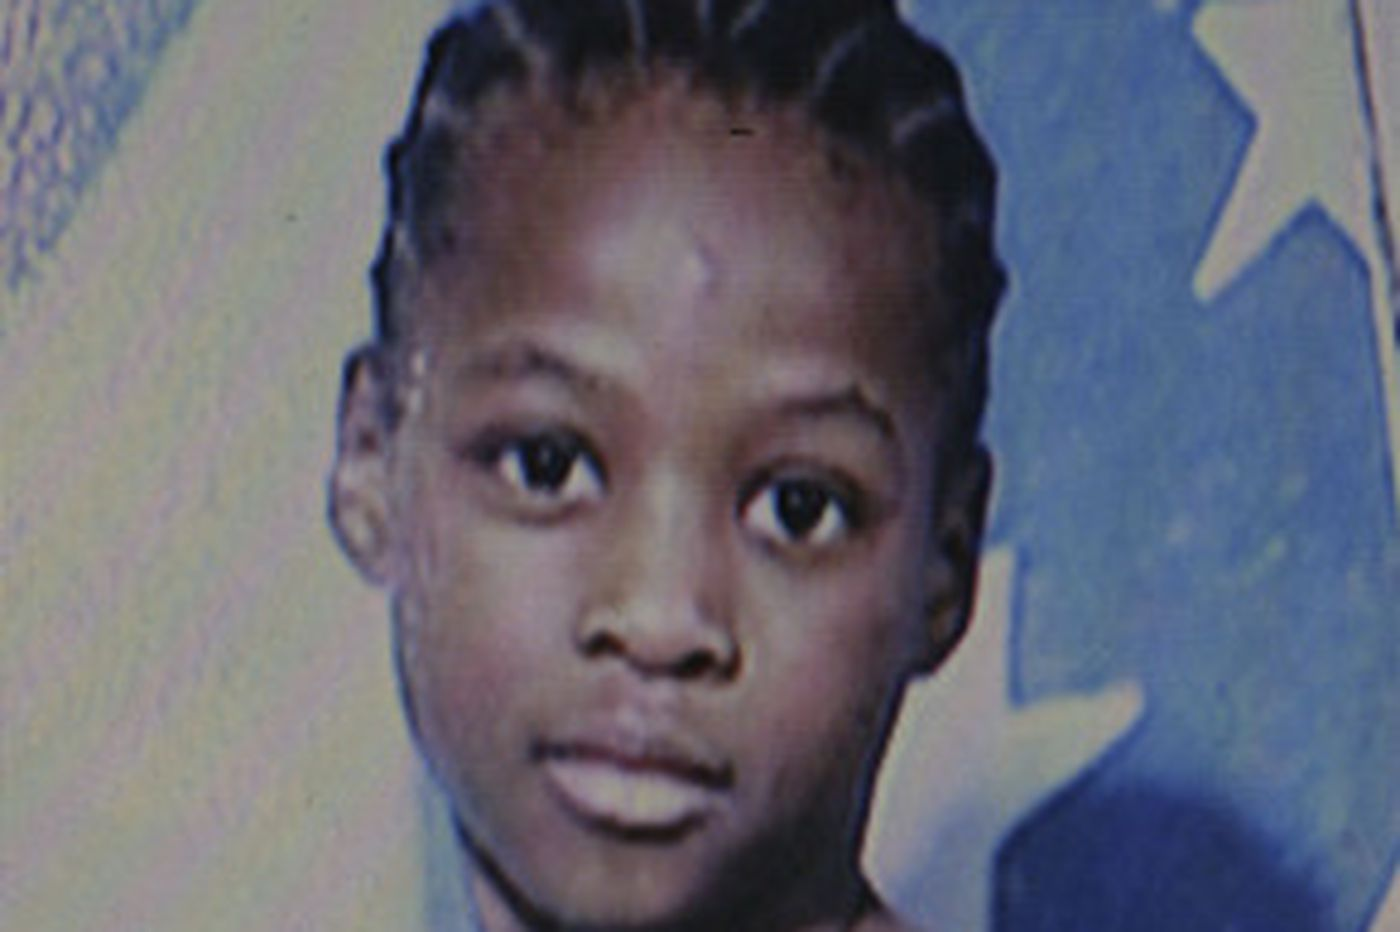 Boy's killer gets death in separate slaying